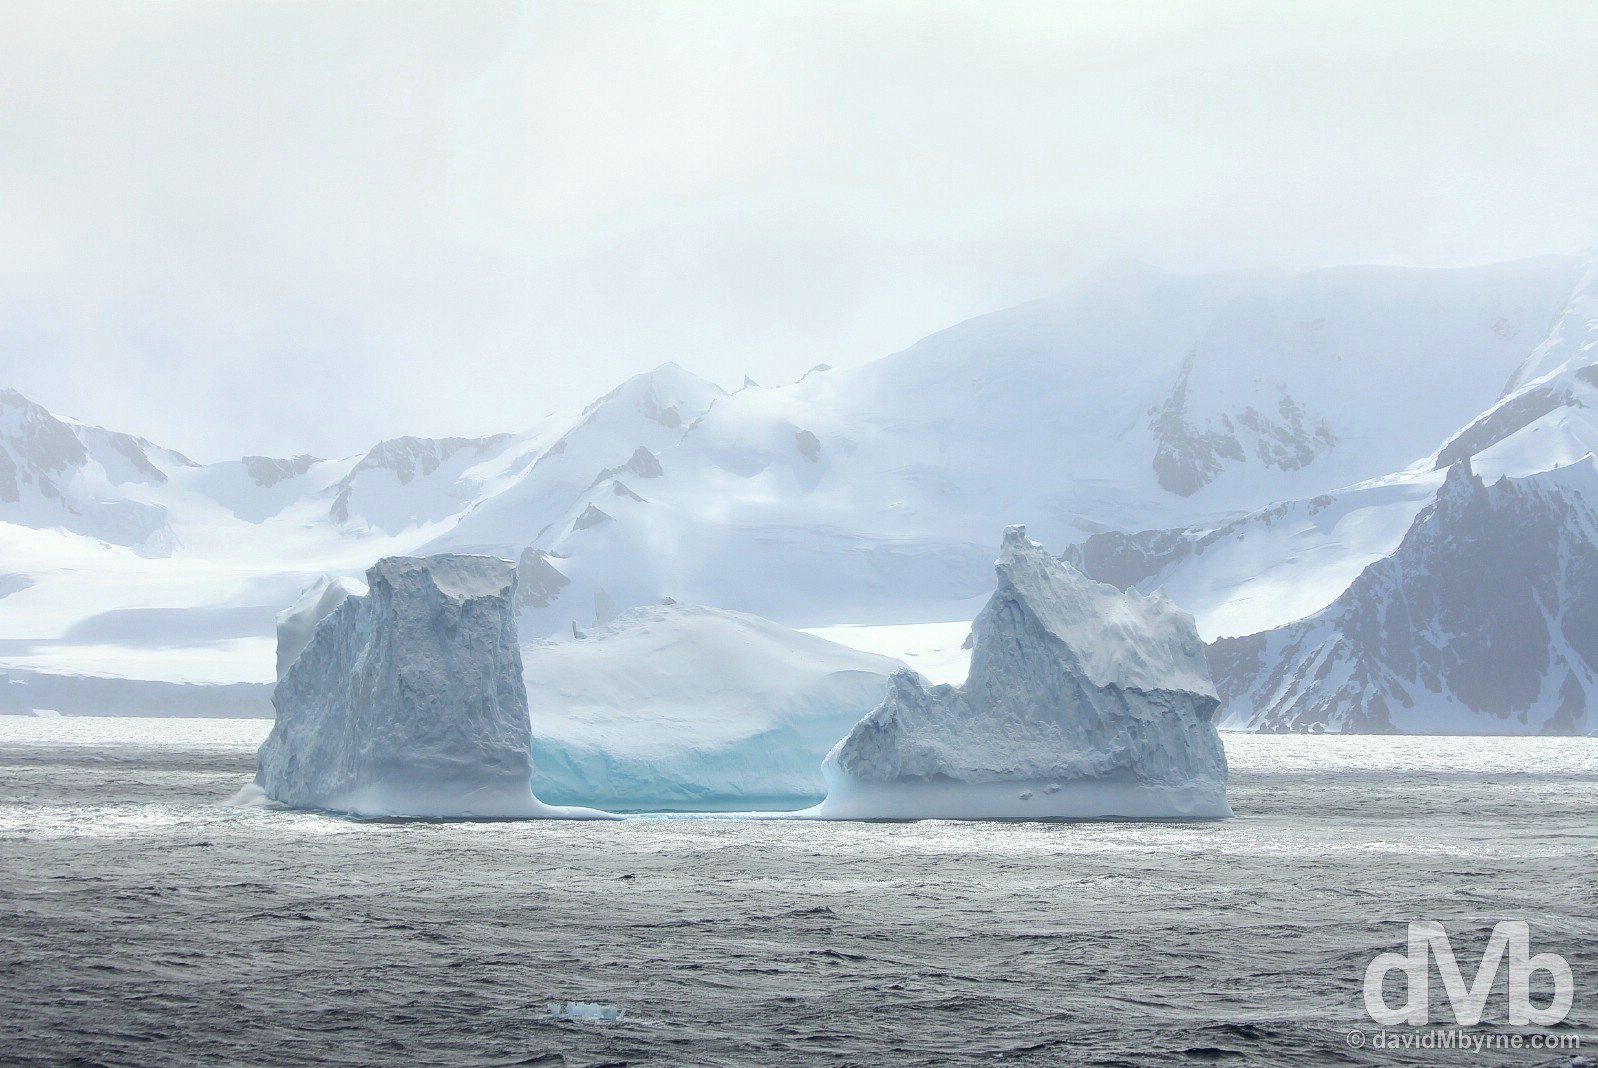 An iceberg in the Bransfield Strait, Antarctica. November 29, 2015.